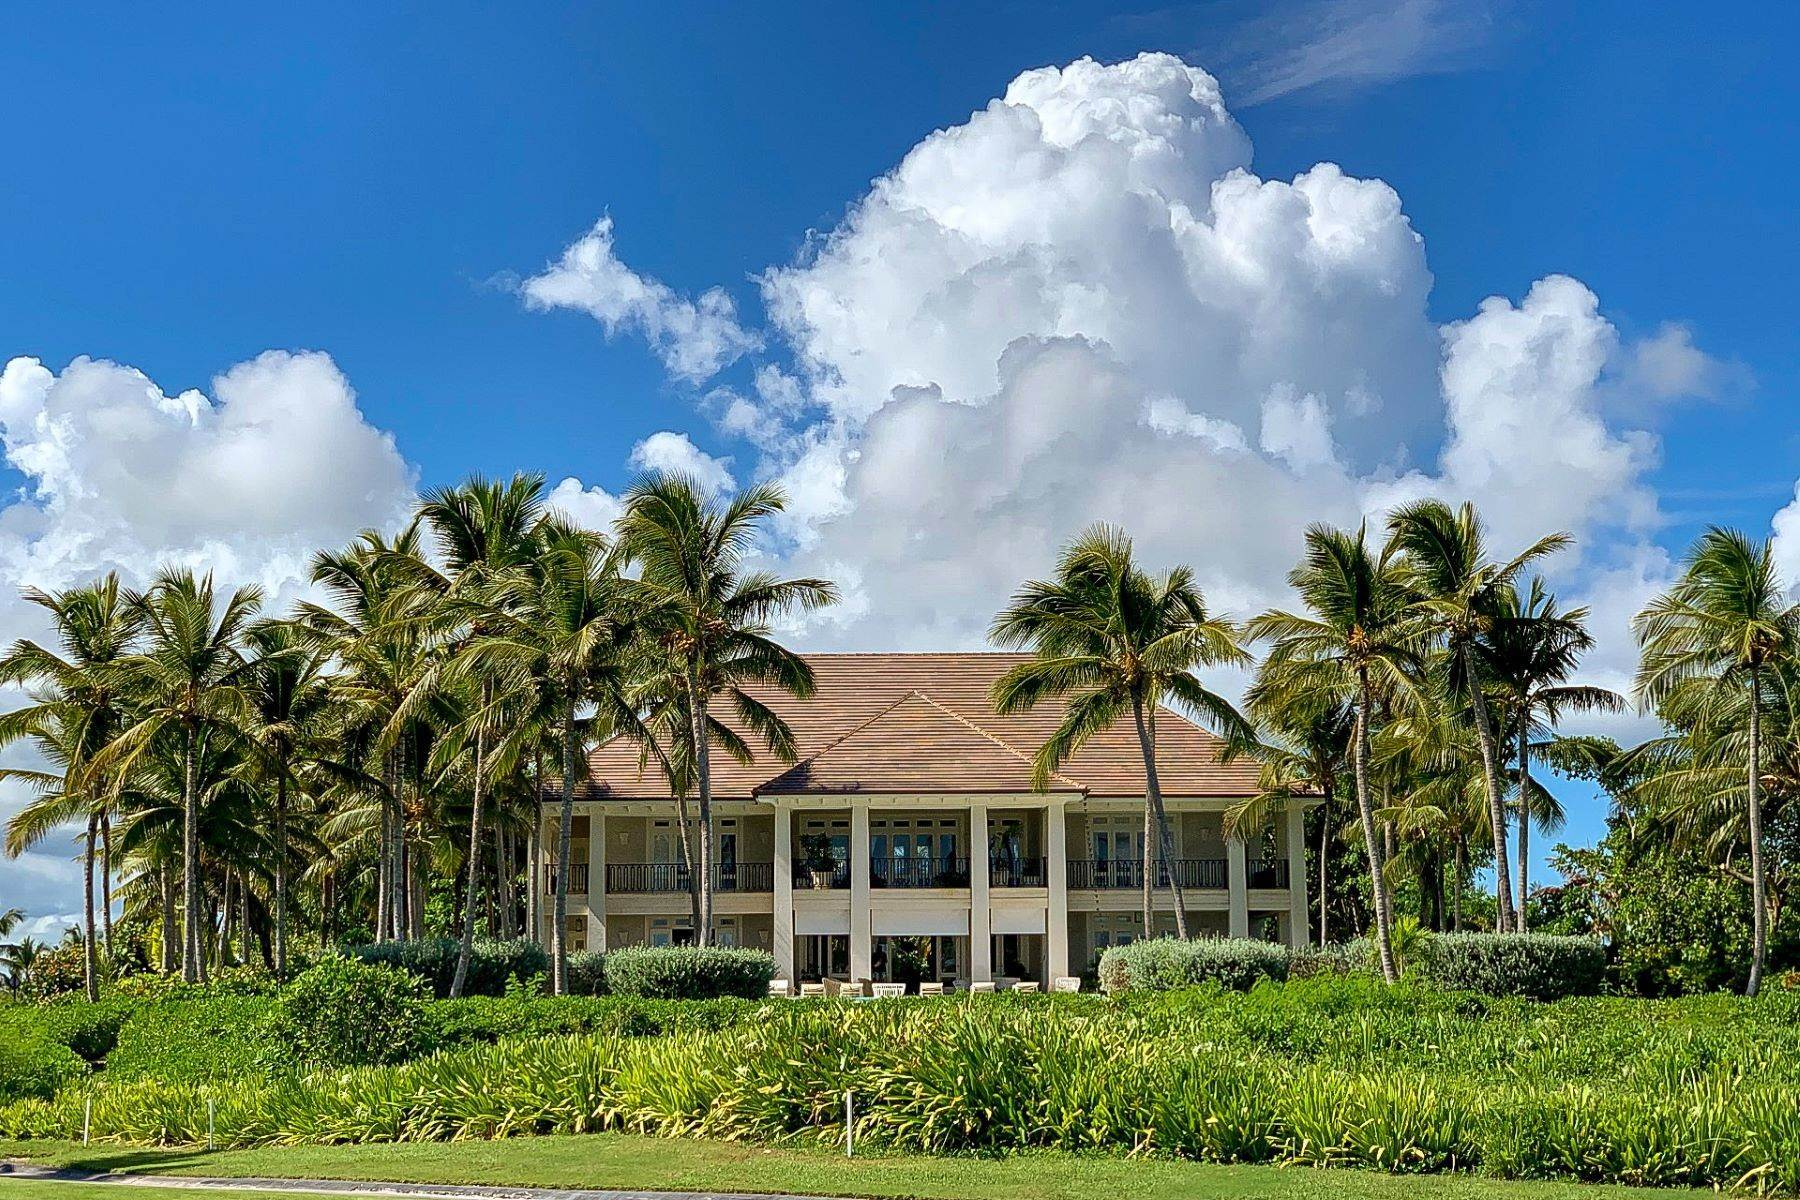 Single Family Homes für Verkauf beim Corales # 50 – Ocean Views and Endless Fairways close to the Beach Corales # 50, Puntacana Resort & Club Punta Cana, La Altagracia 23000 Dominikanische Republik